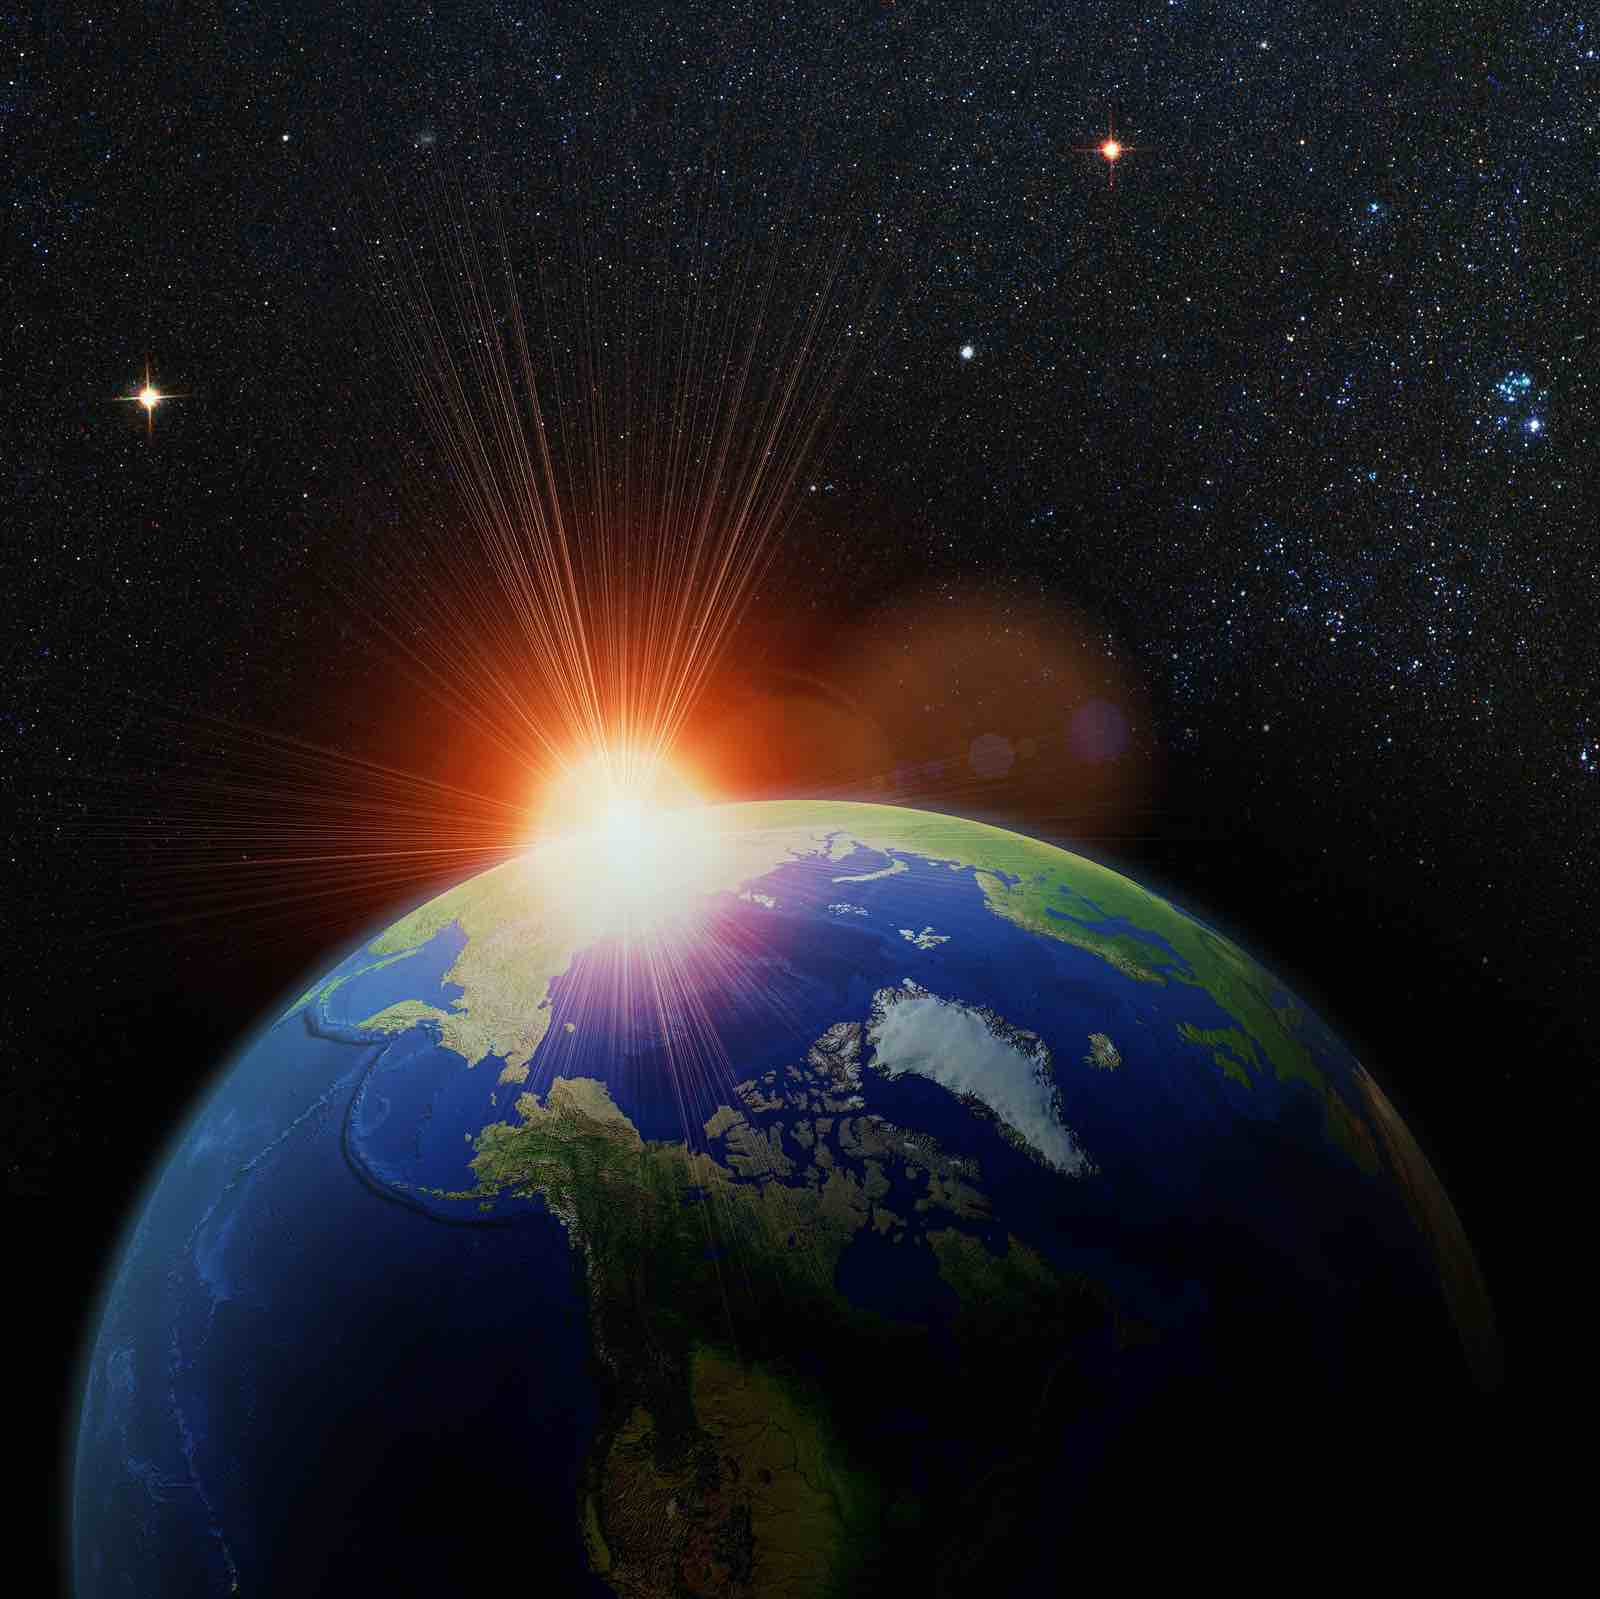 bigstock-Planet-earth-with-sunrise-in-s-25593122 copy